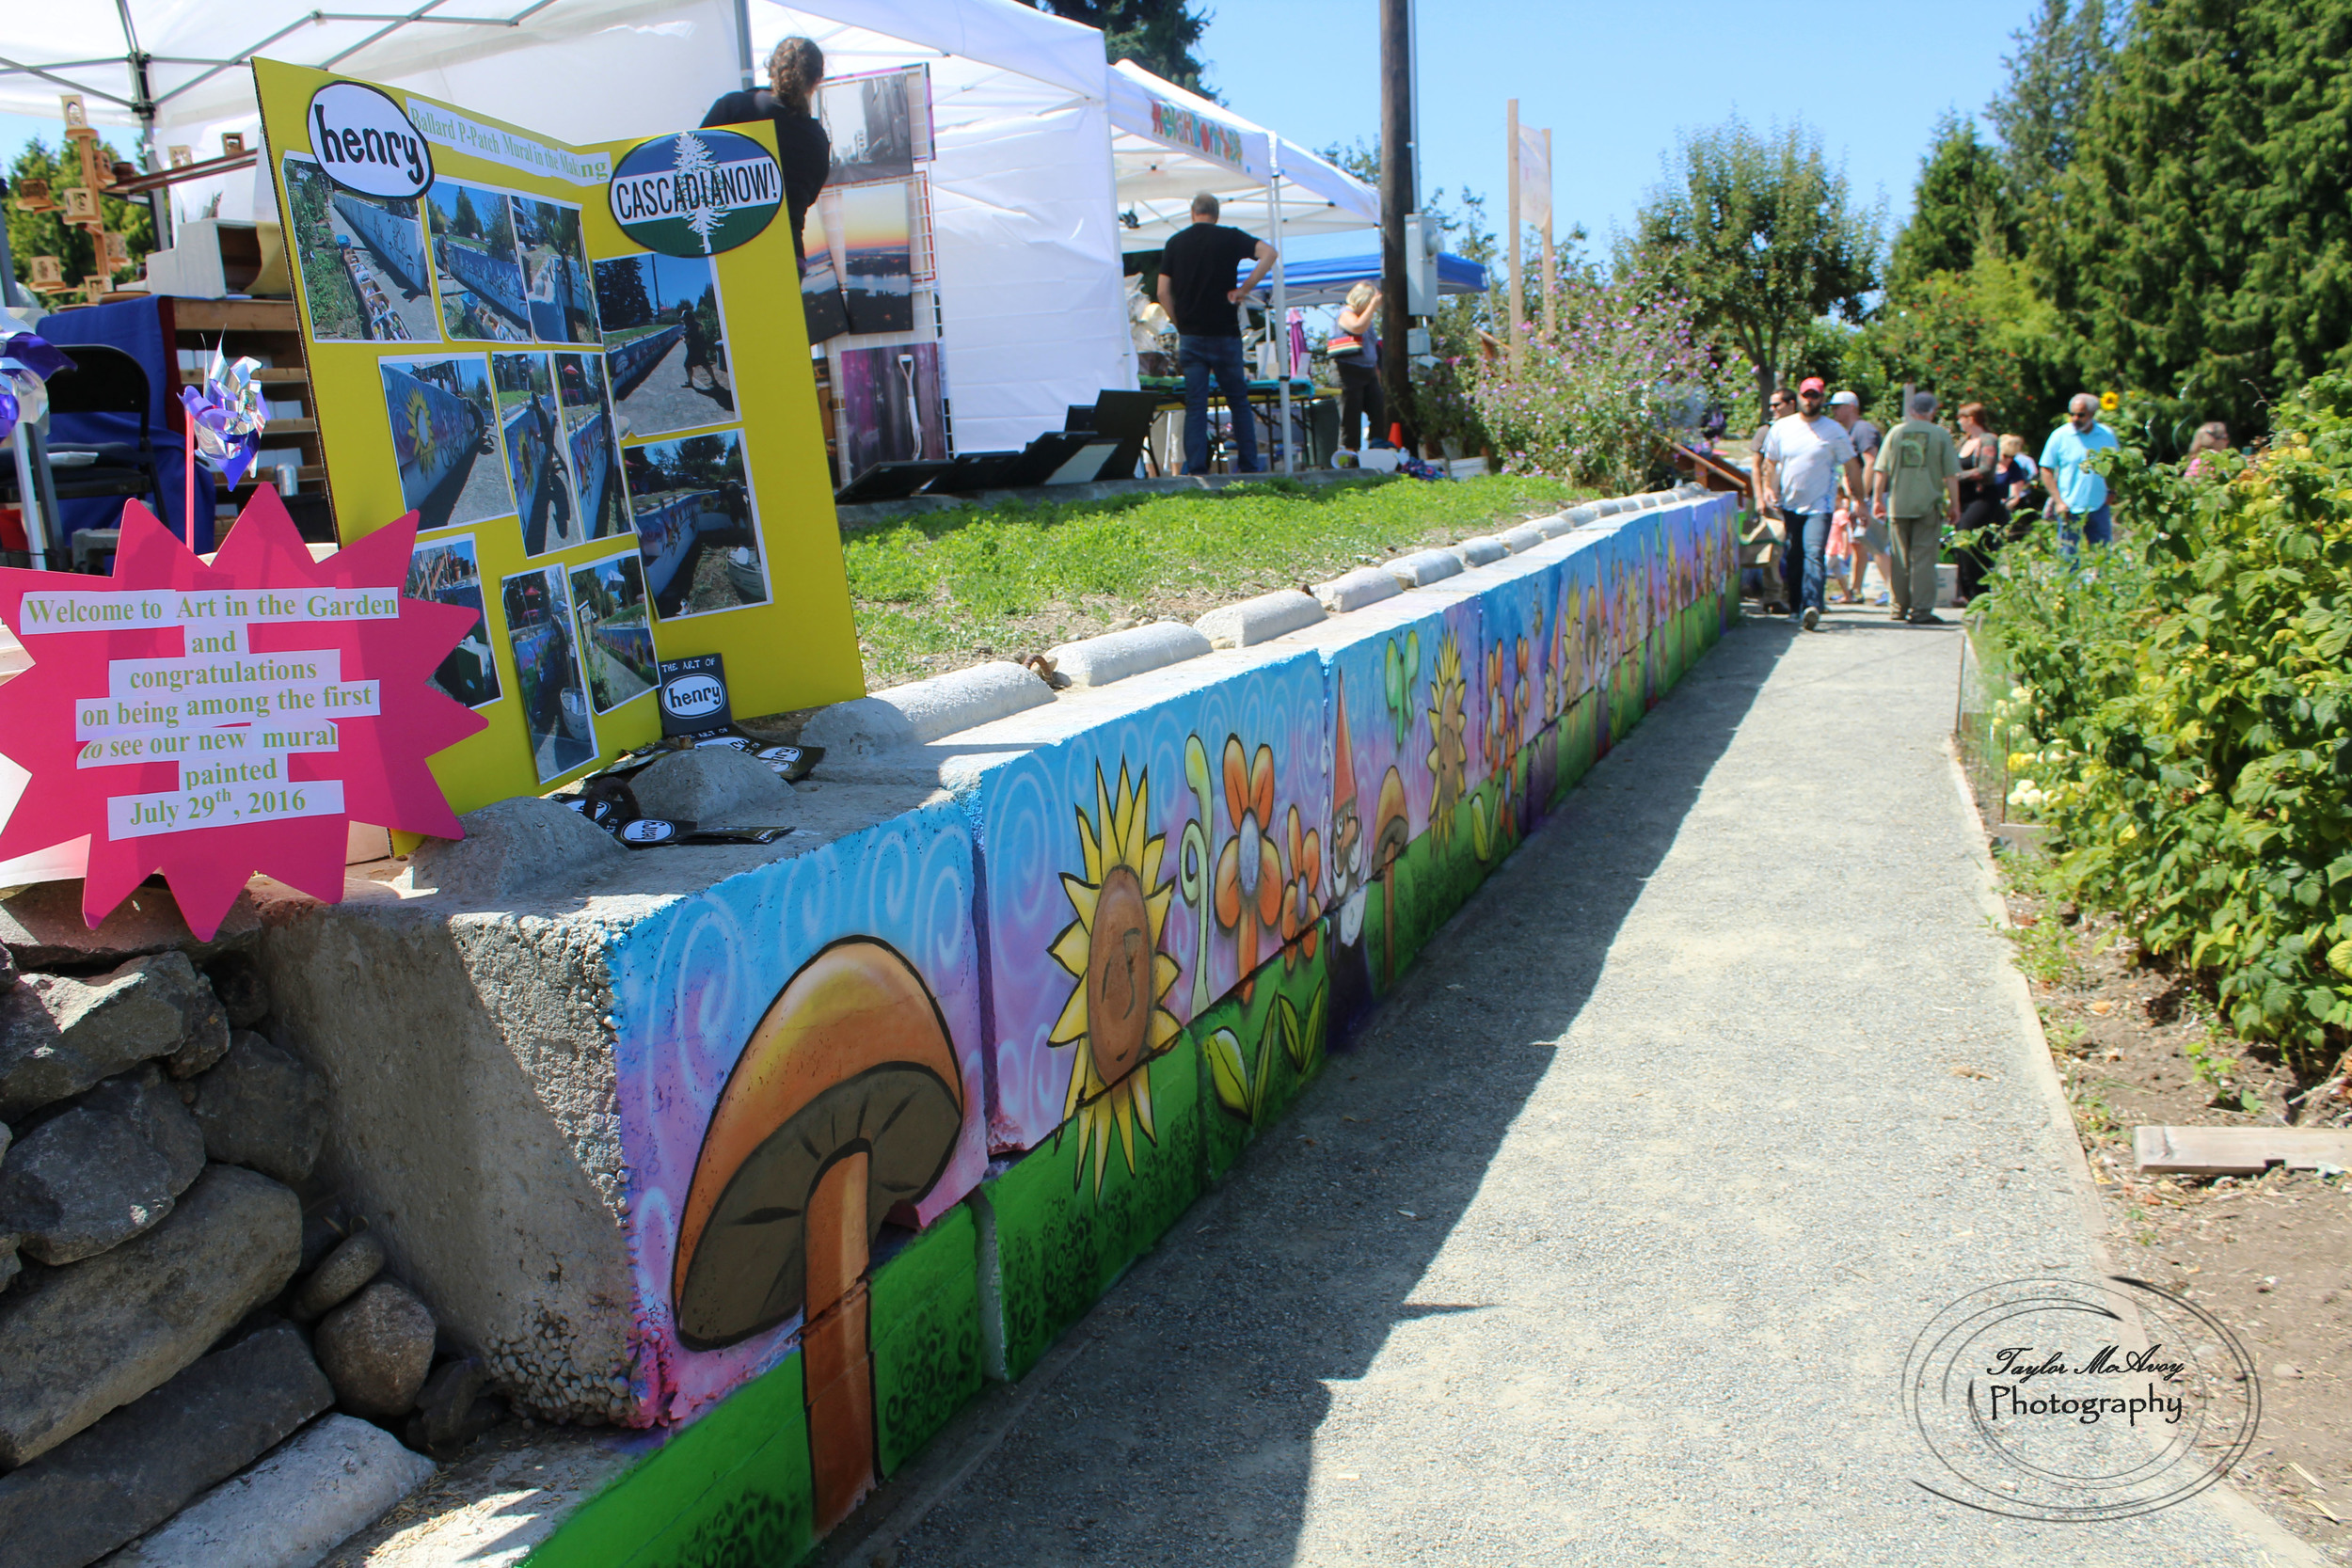 Seattle artist Ryan Henry Ward contributed to the community and the Ballard P-Patch by volunteering to paint this beautiful mural and add to the color of the community.